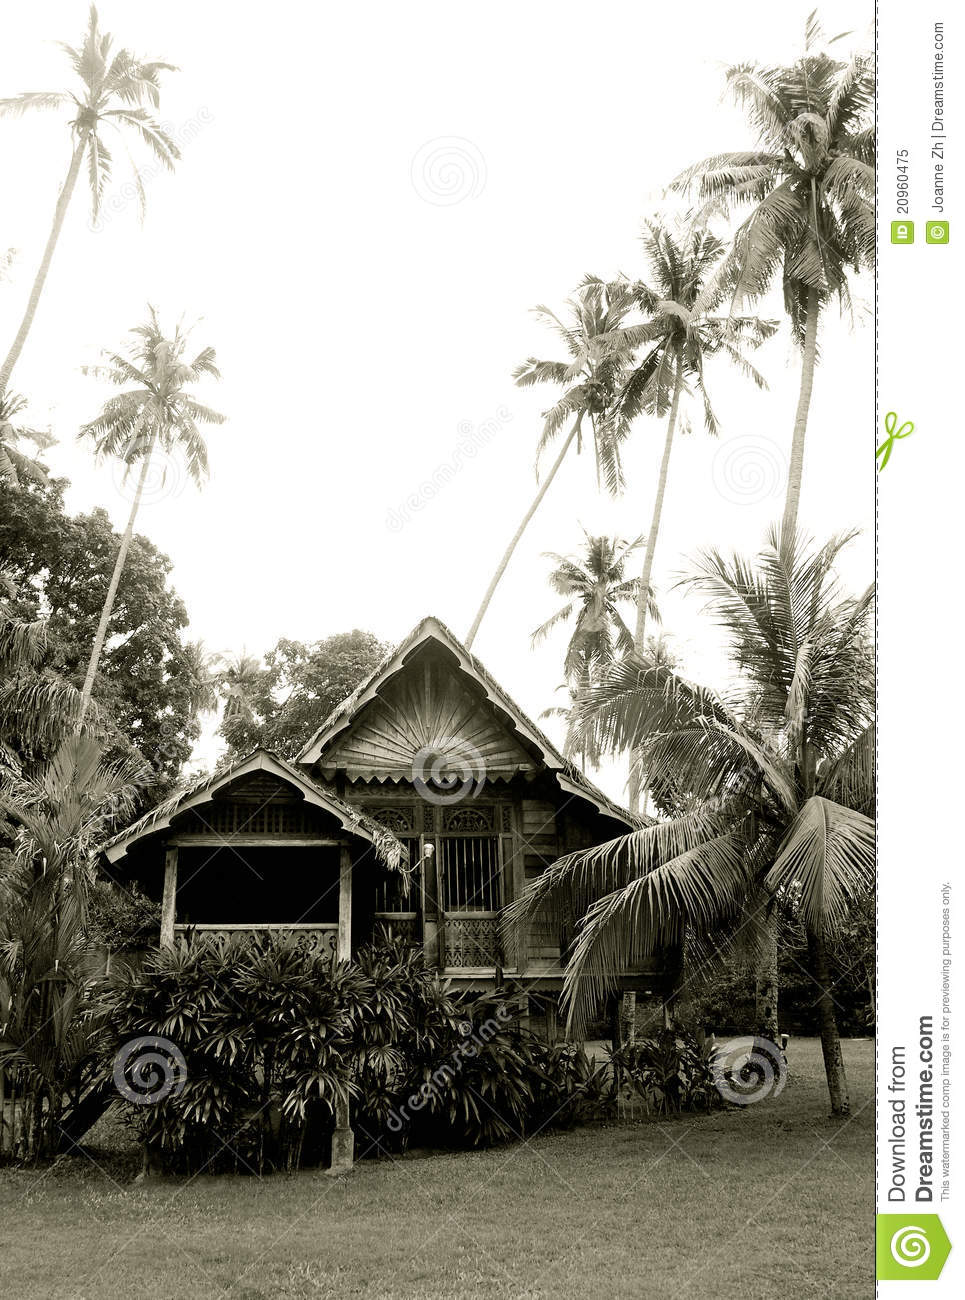 Antique Malaysian Rural Wooden House Royalty Free Stock